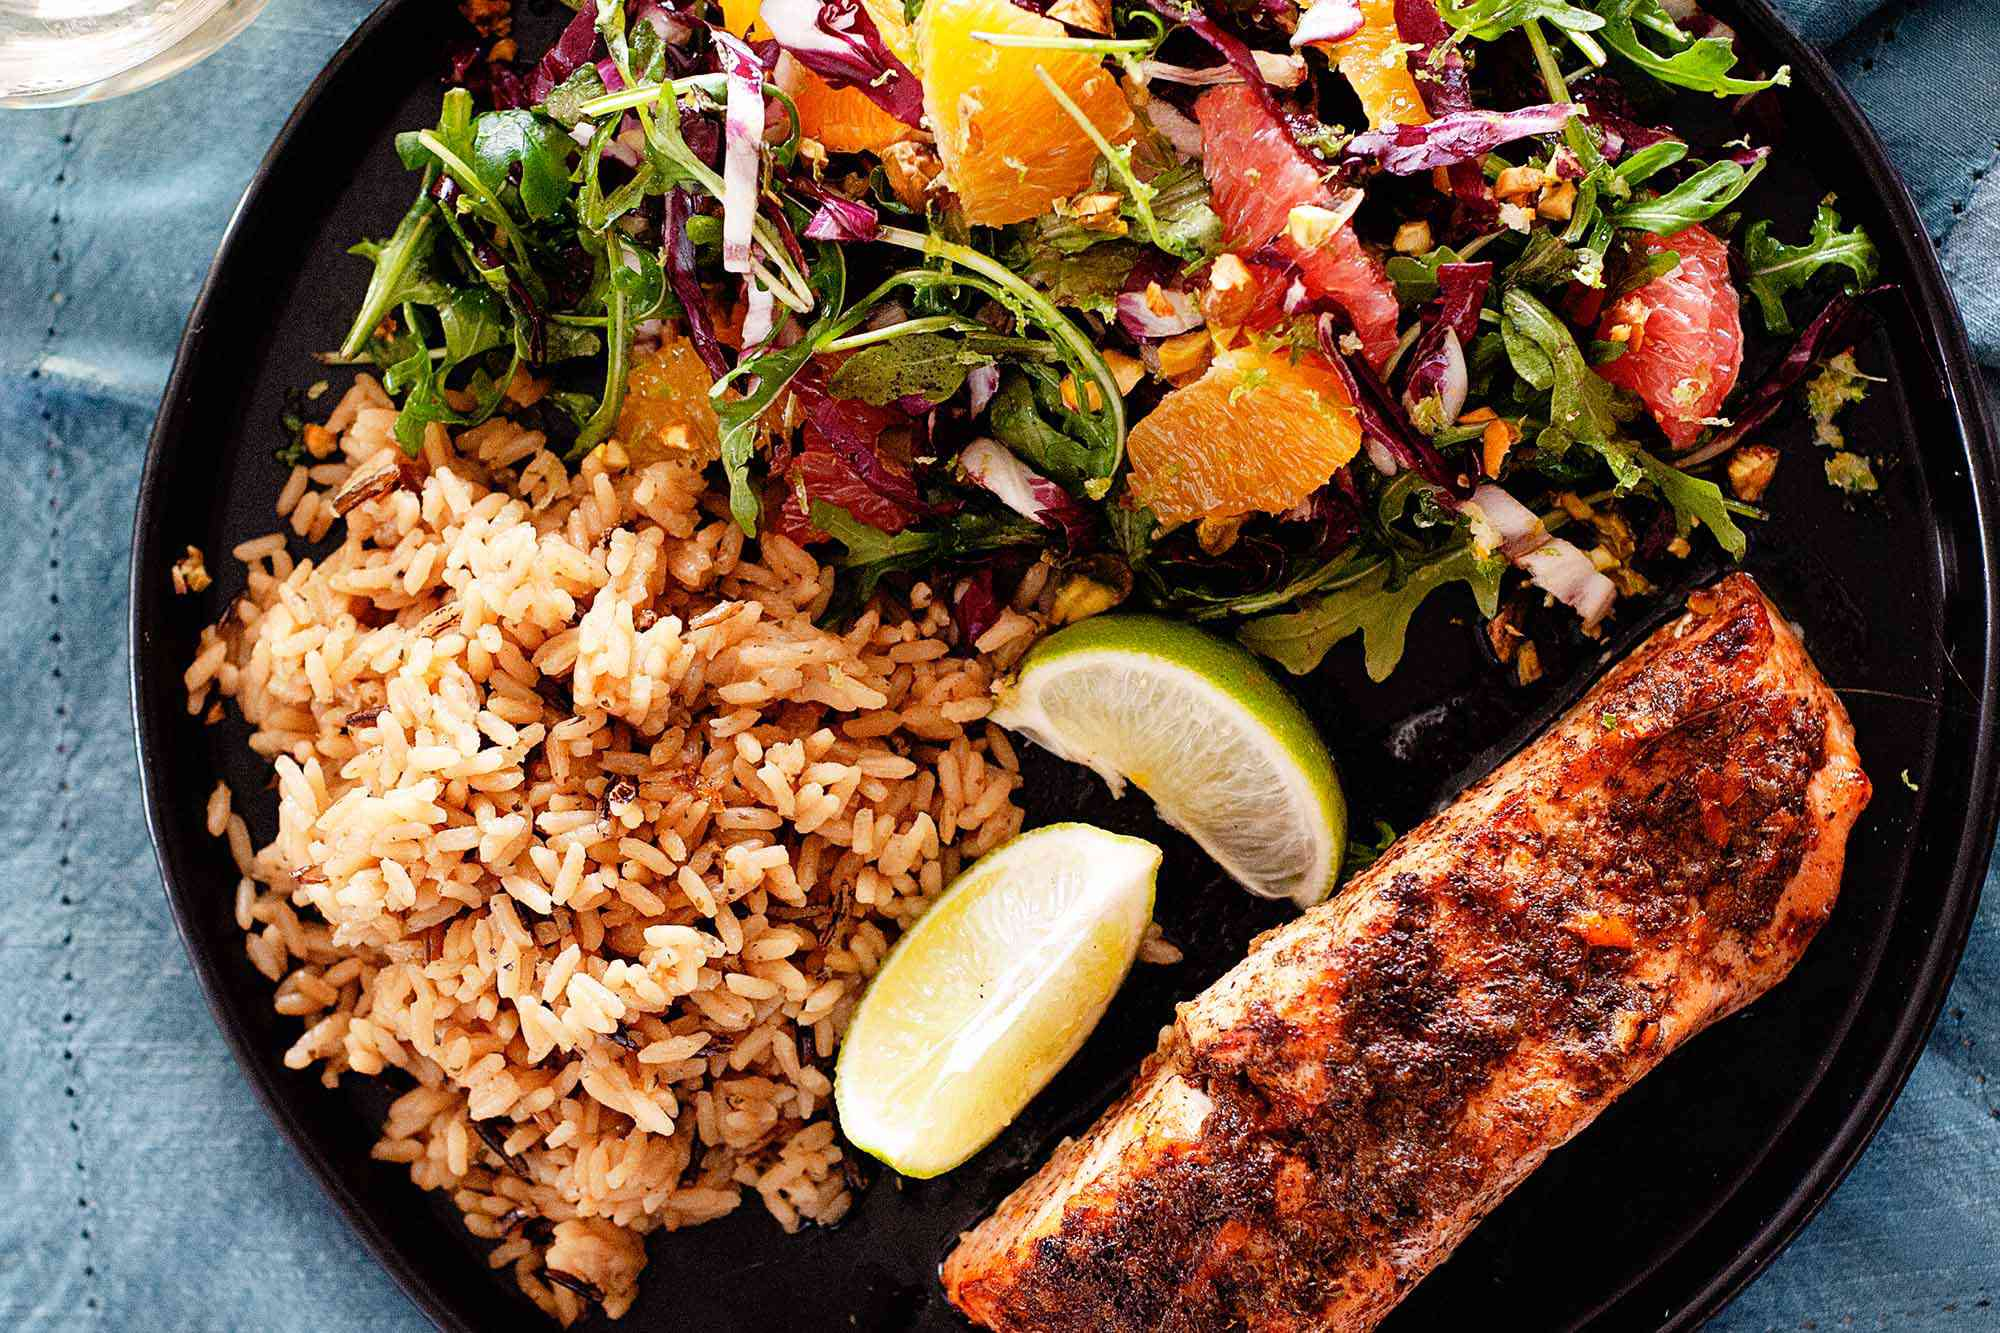 A blackened fillet of weeknight jerk salmon is on the lower right of a black plate. Lime wedges, red rice and a mixed green salad with citrus mixed in is to the left of the salmon. The plate rests on a blue linen.